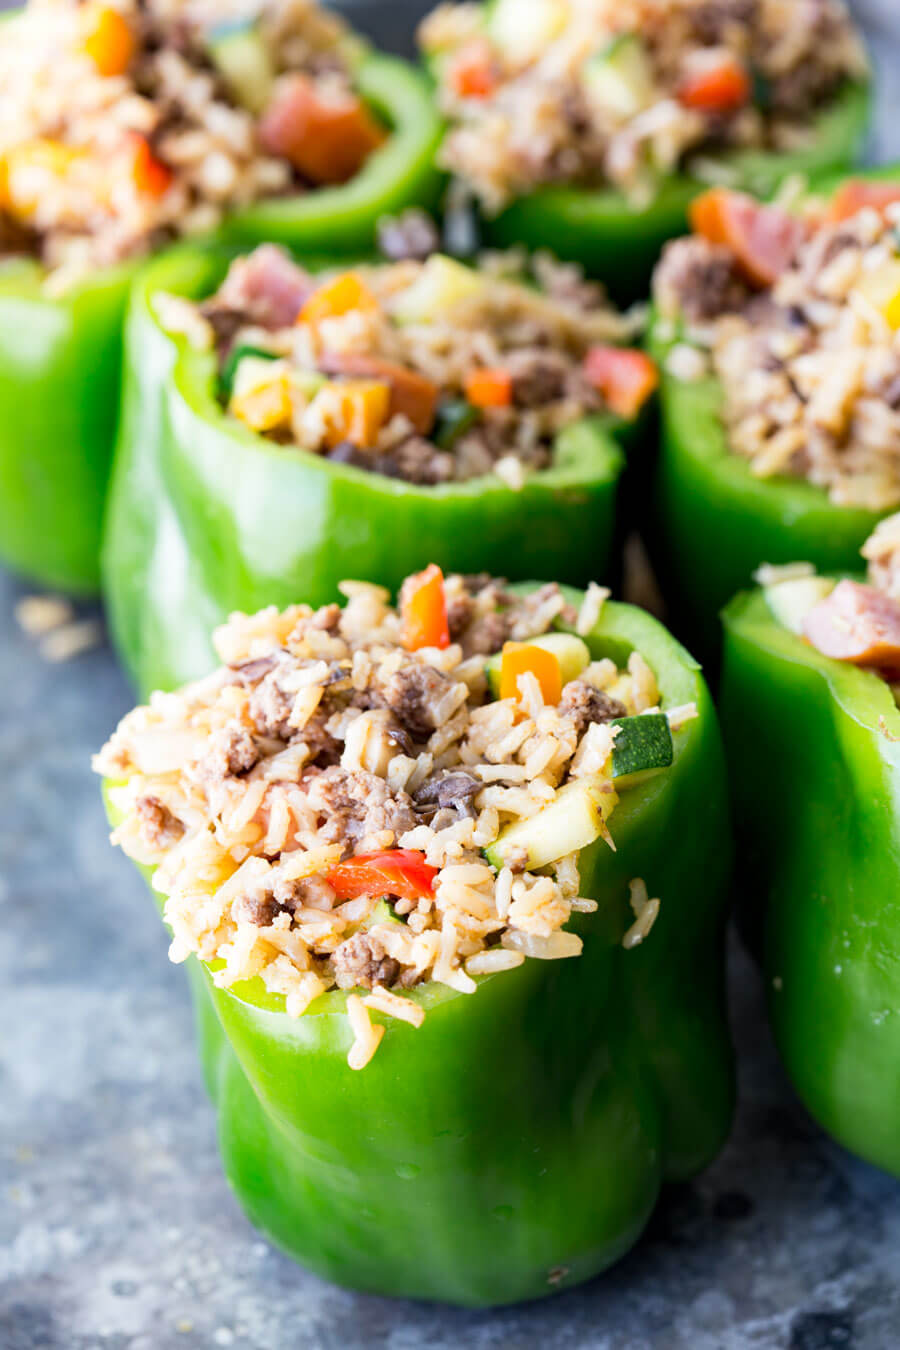 Green bell peppers stuffed with rice, sausage, and vegetables ready to be baked or frozen, sitting on a gray table